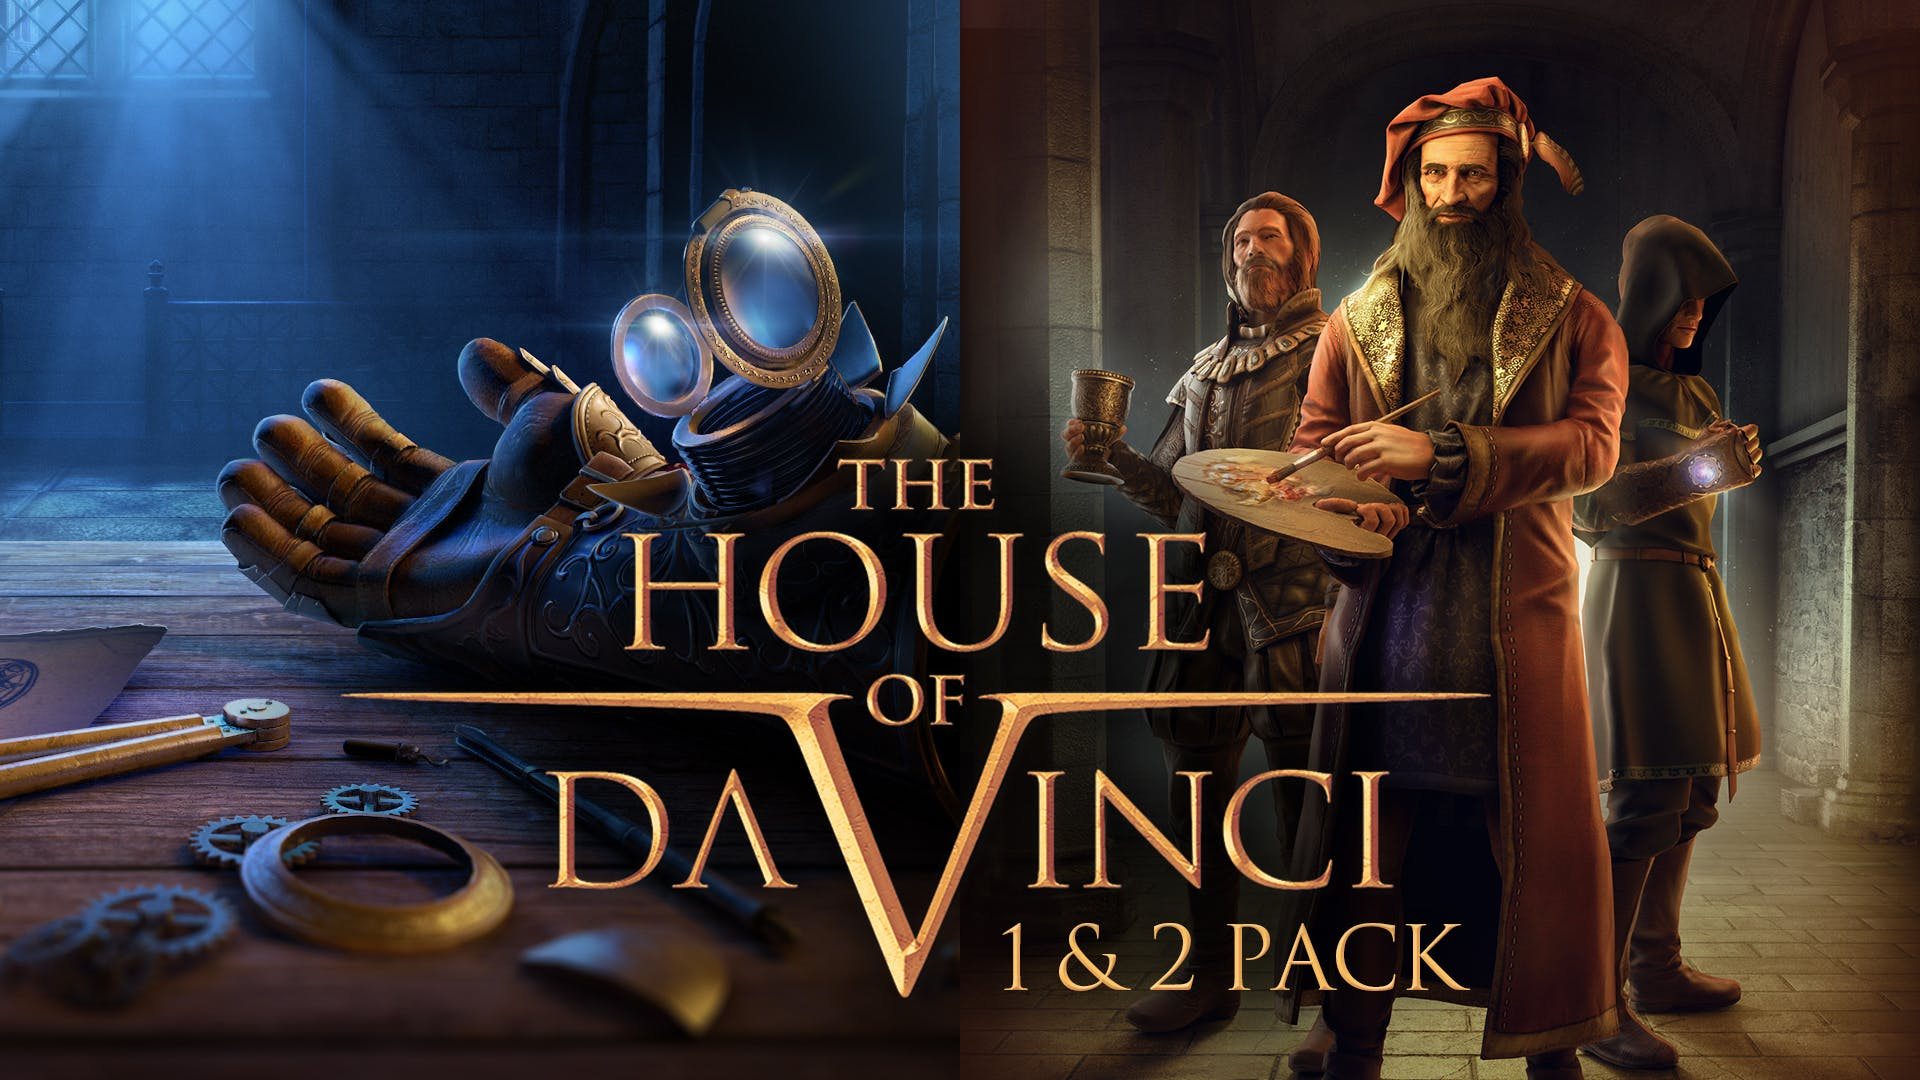 The House of Da Vinci 1 + 2 Pack